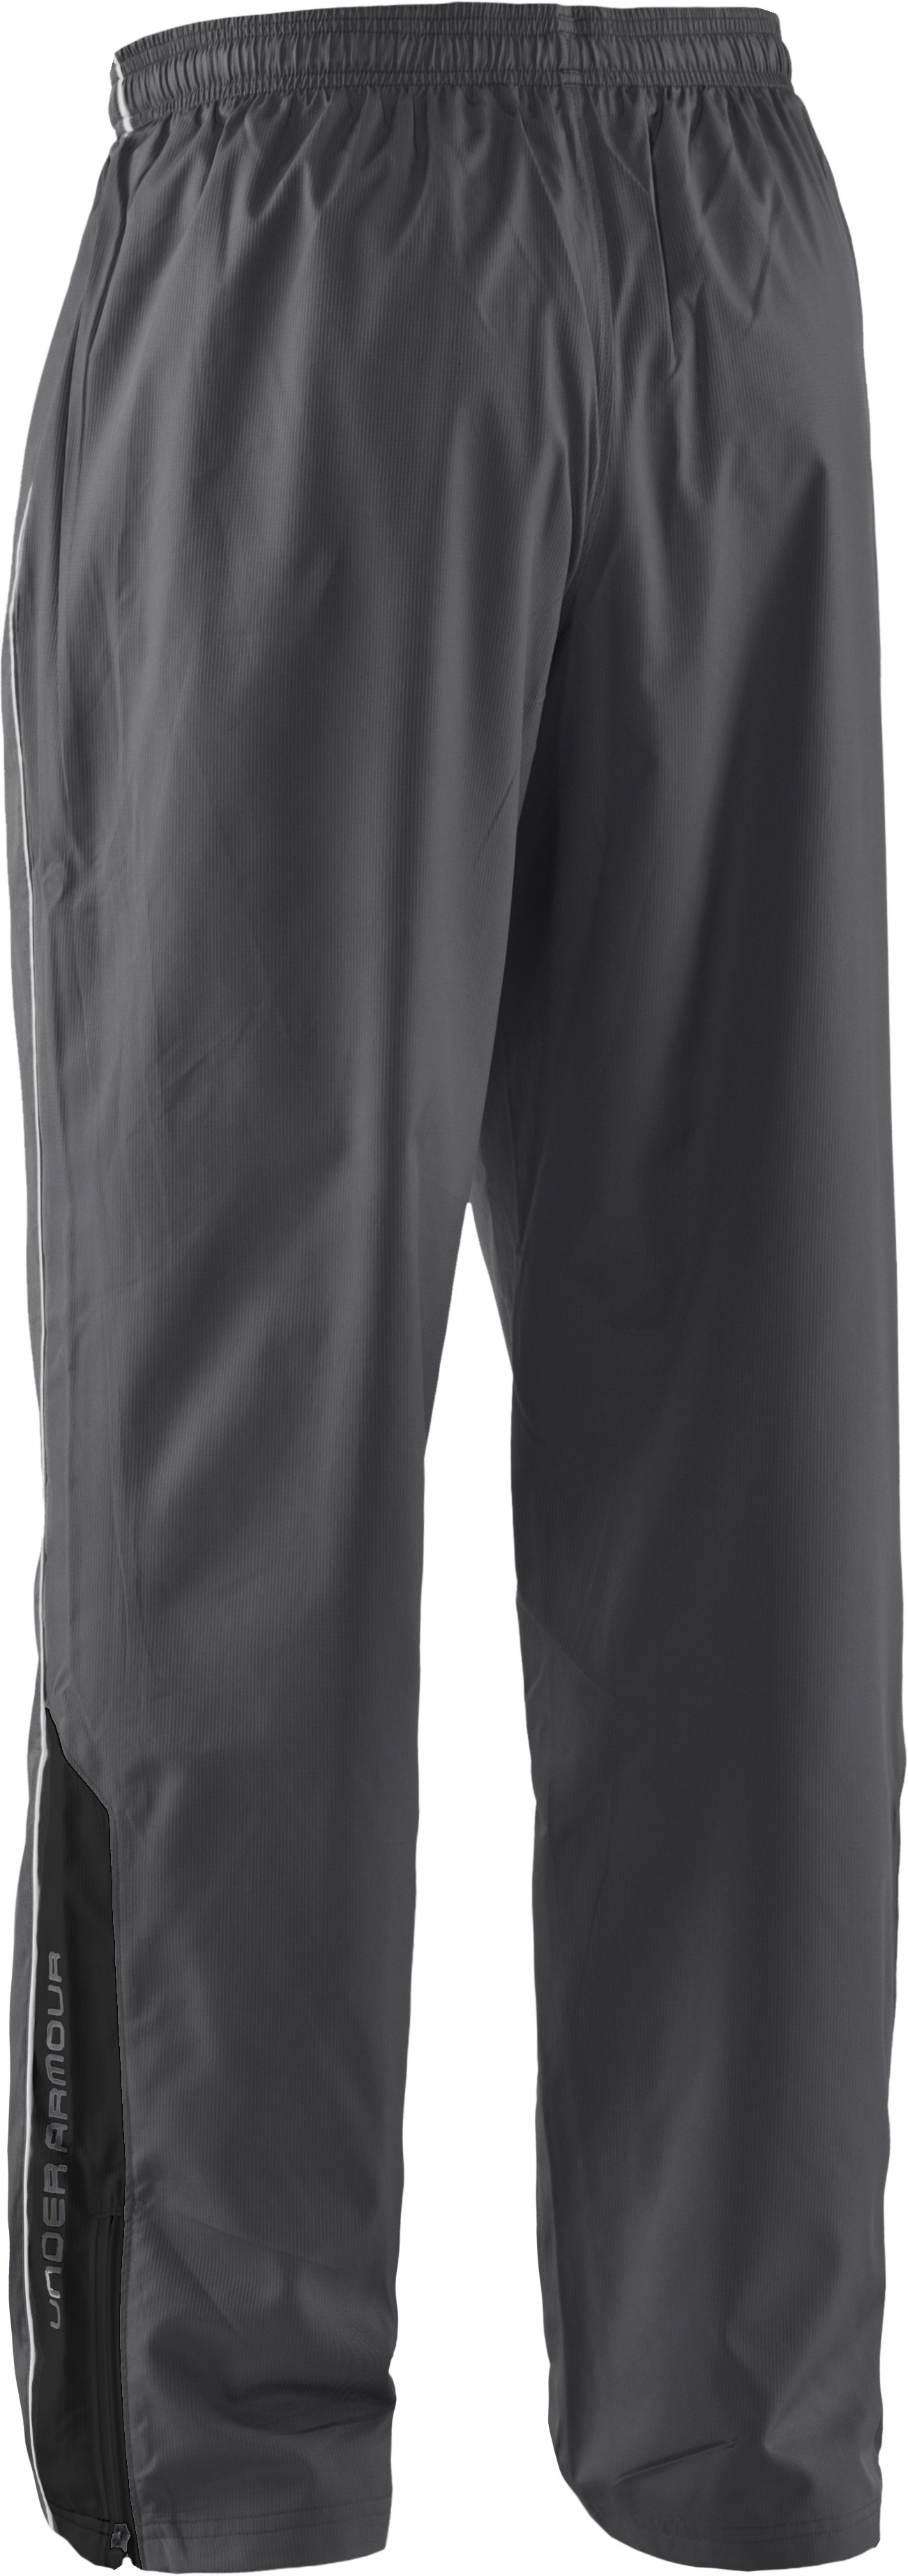 Men's UA Bandito Woven Warm-Up Pants, Graphite, undefined